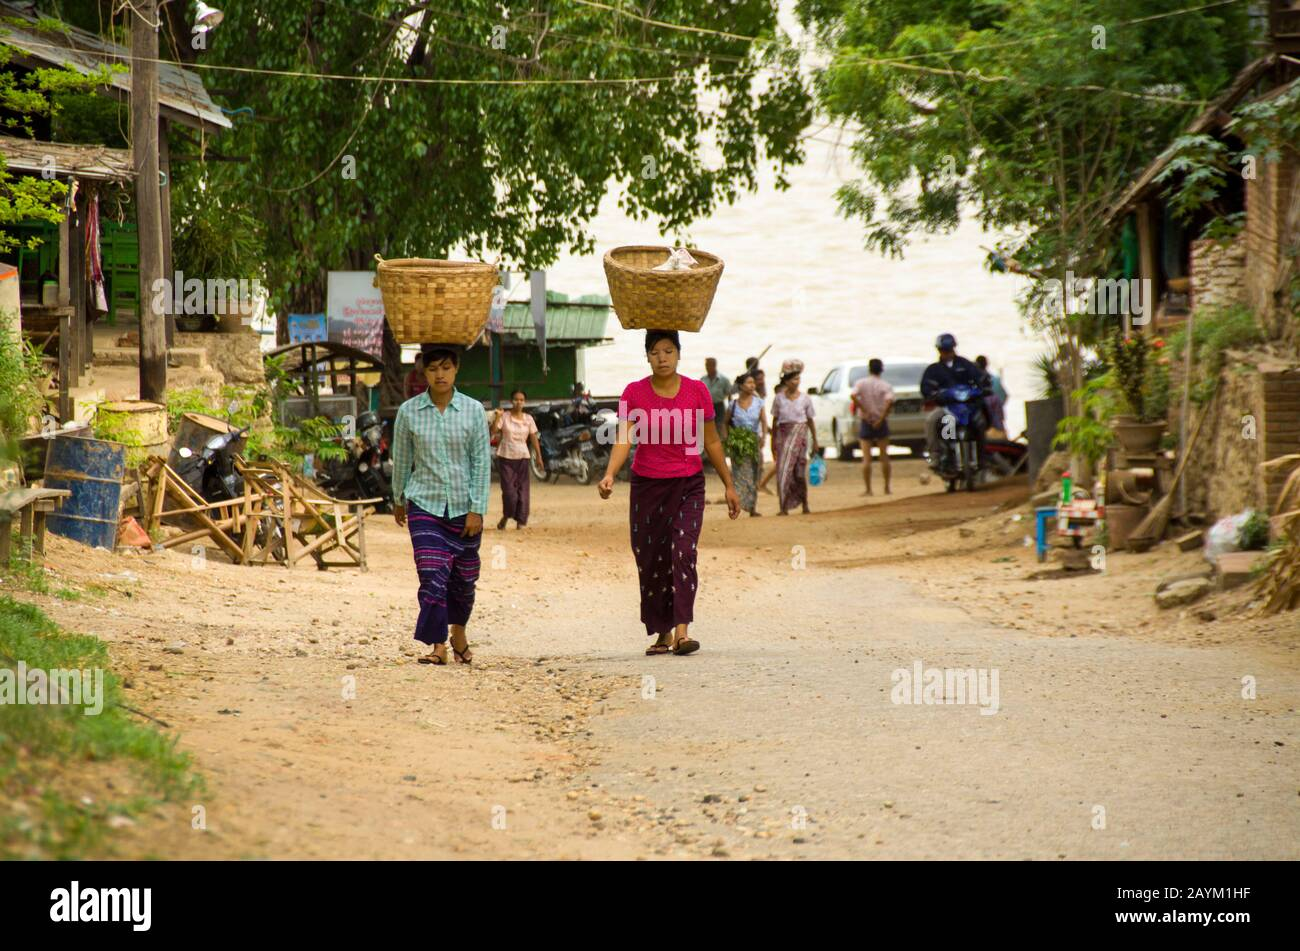 Myanmar women carrying big bamboo basket on their head, walking along the sandy road by the beach in Myanmar Stock Photo